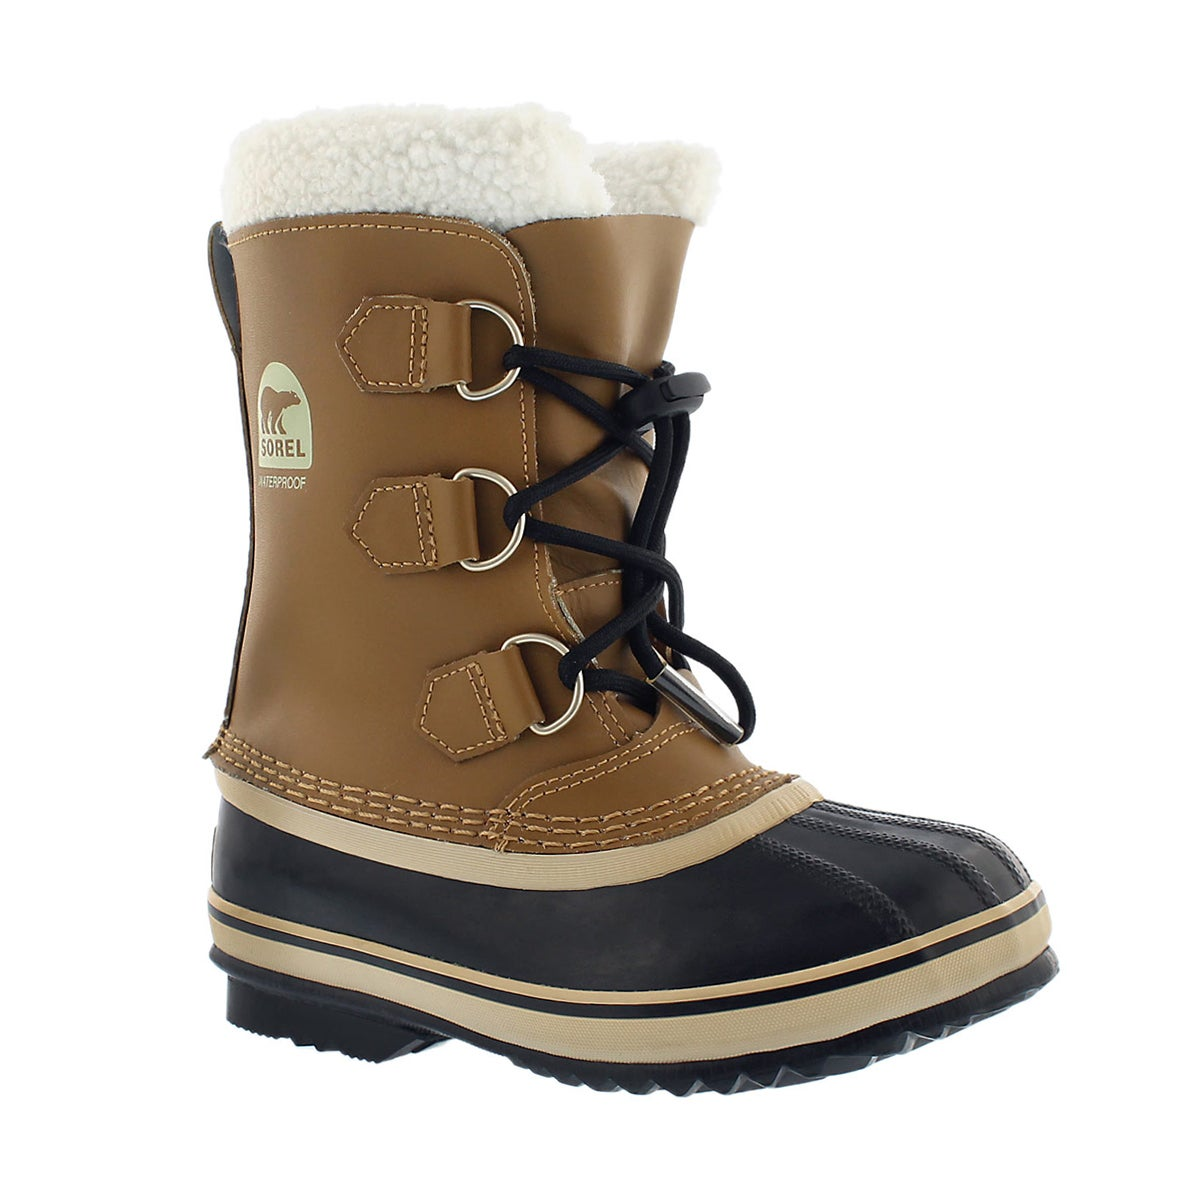 Boys' YOOT PAC TP mesquite waterproof winter boots